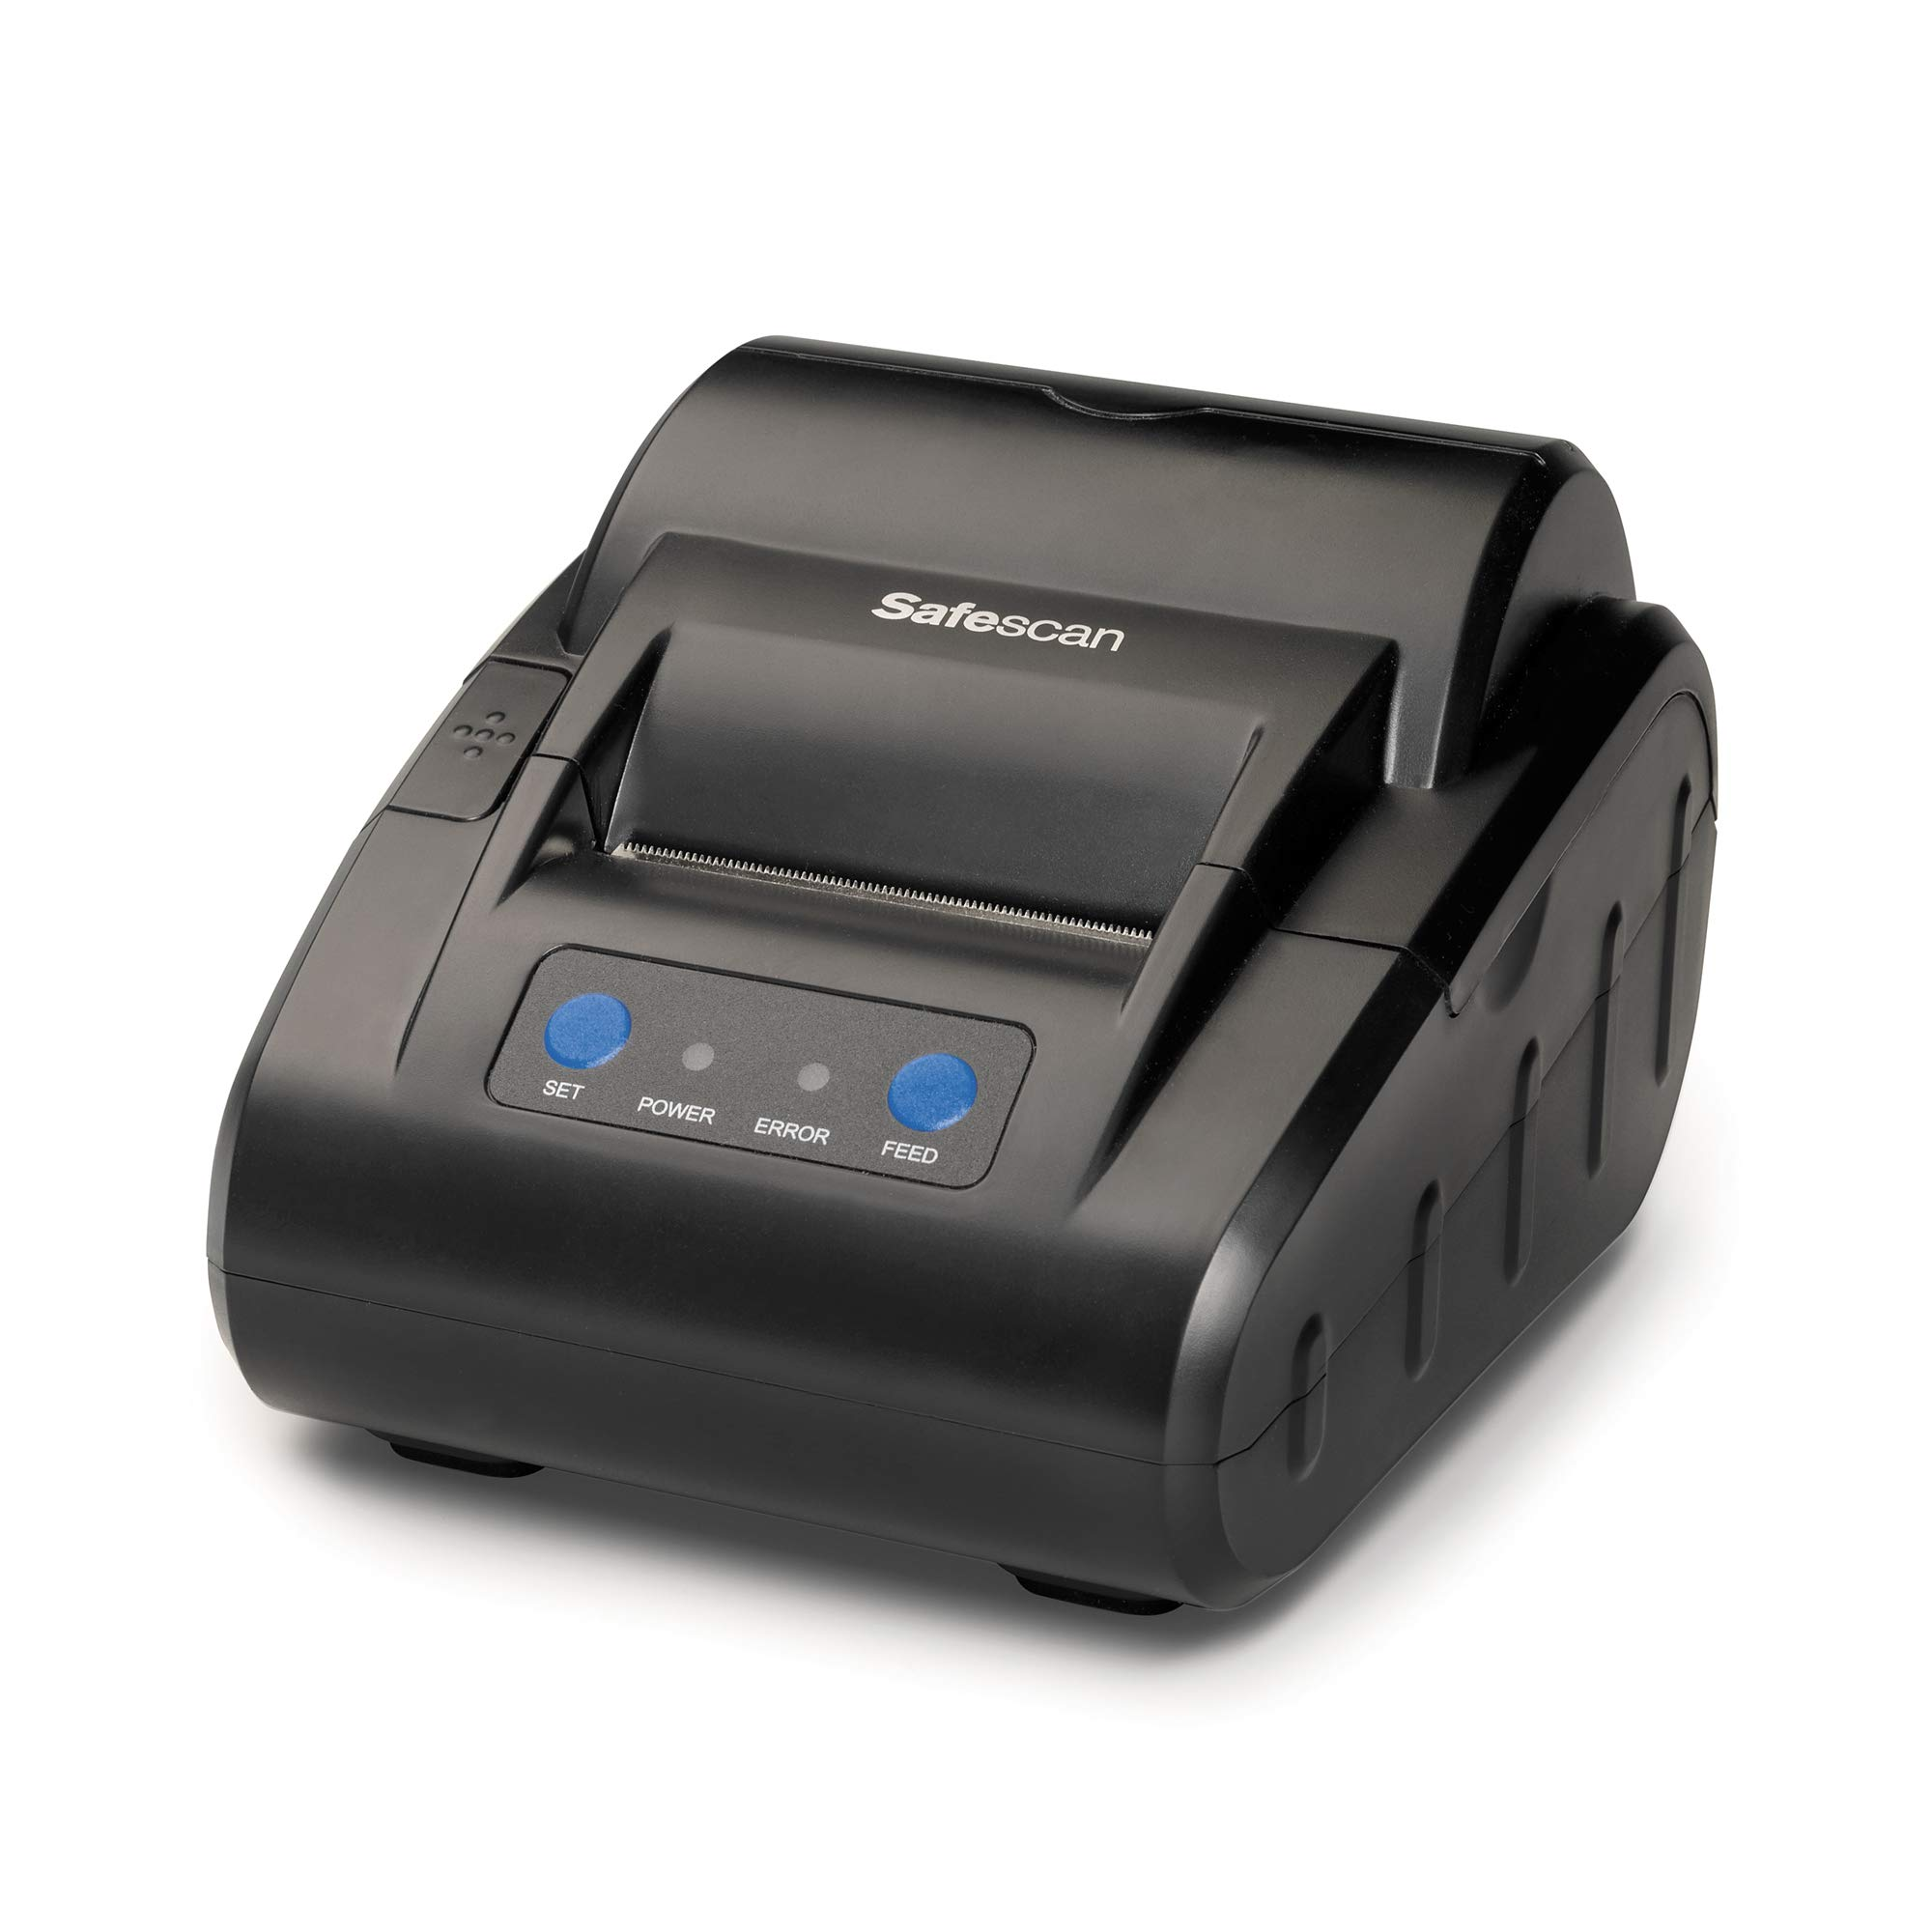 Safescan TP-230 - Thermal Receipt Printer for Safescan Money counters by Safescan